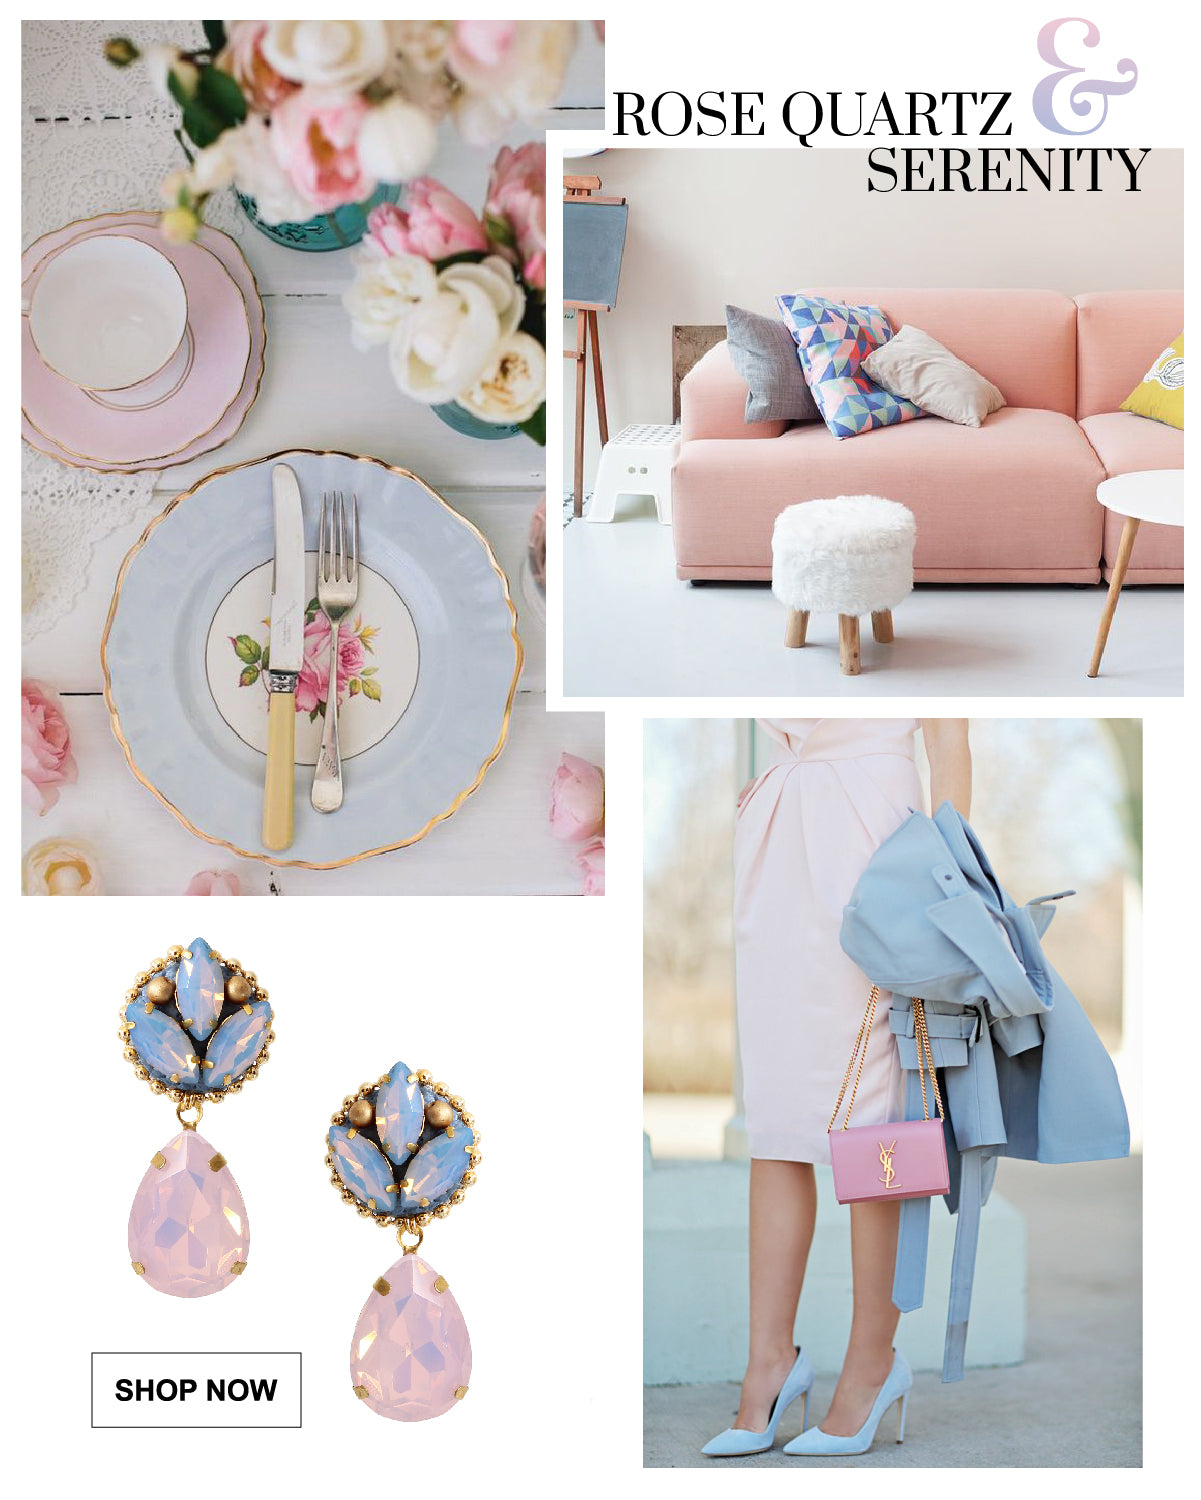 This year the Pantone color of the year are Rose Quartz and Serenity. These teardrop earrings use both colors, they are perfect for any occasion making them a versatile pair that can be both casual and formal.